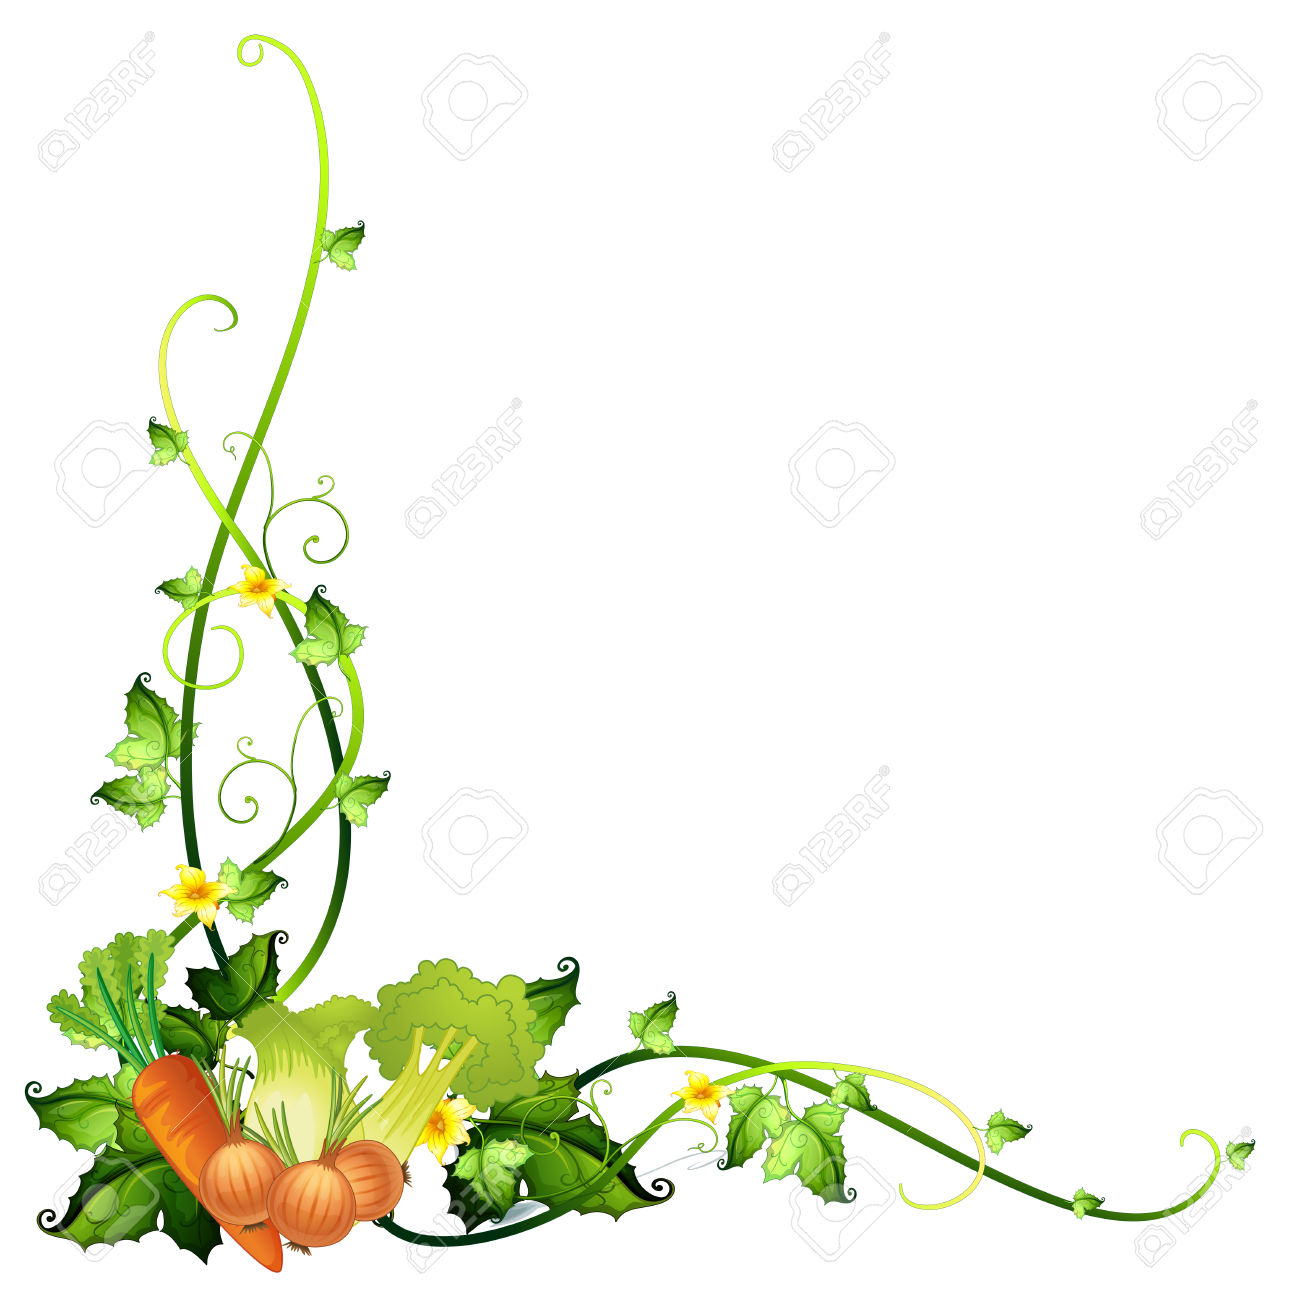 Vegetable Border Cliparts Stock Vector And Royalty Free Vegetable: clipartion.com/free-clipart-10346